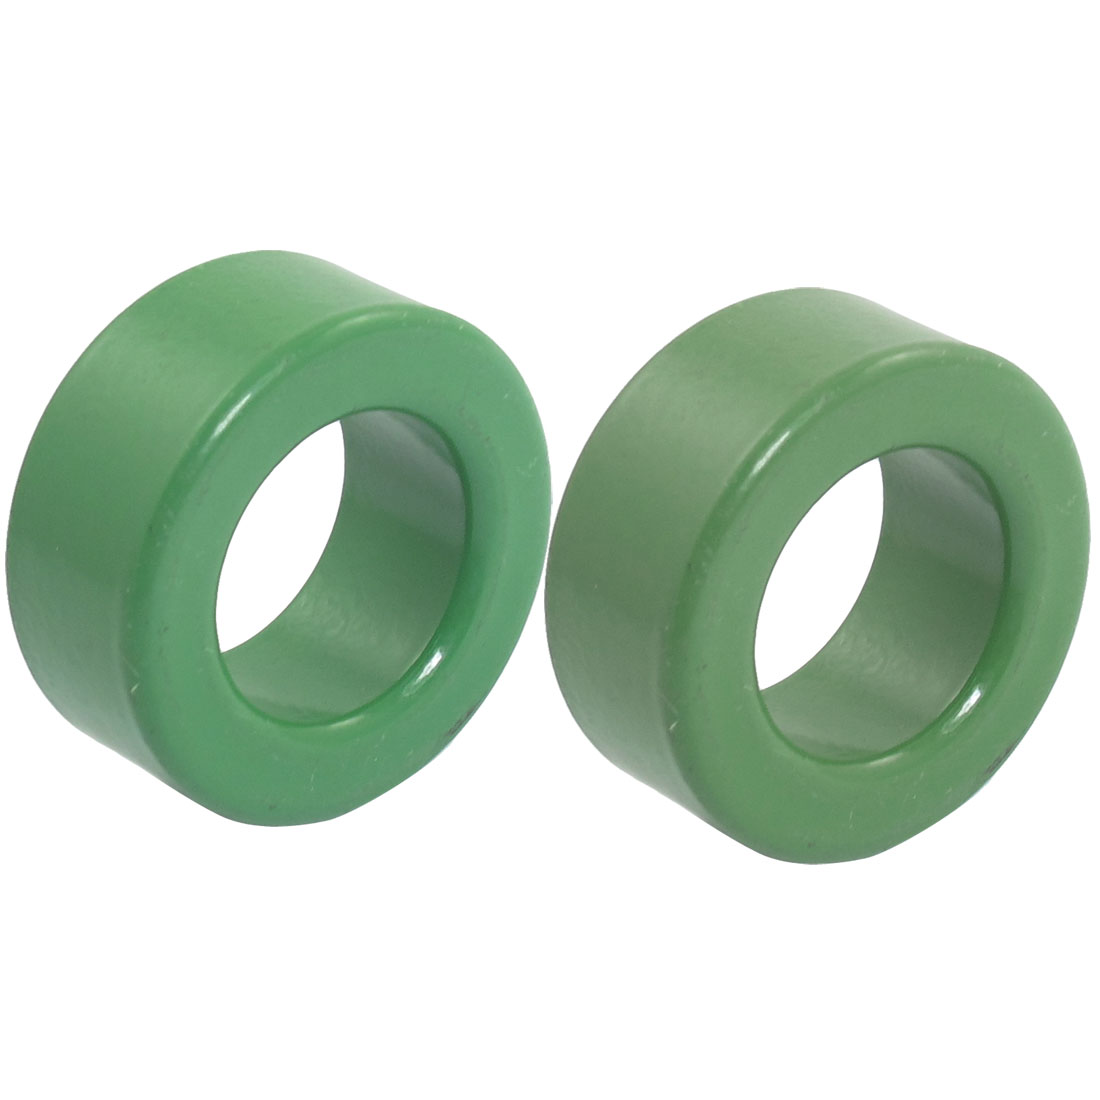 UXCELL Hot Sale 2pcs 31x19x13mm Green Iron Toroid Ferrite Core Used Widely in Inductors Power Transformers Welding Transformers transformers ferrite toroid cores green 74mm x 39mm x 13mm